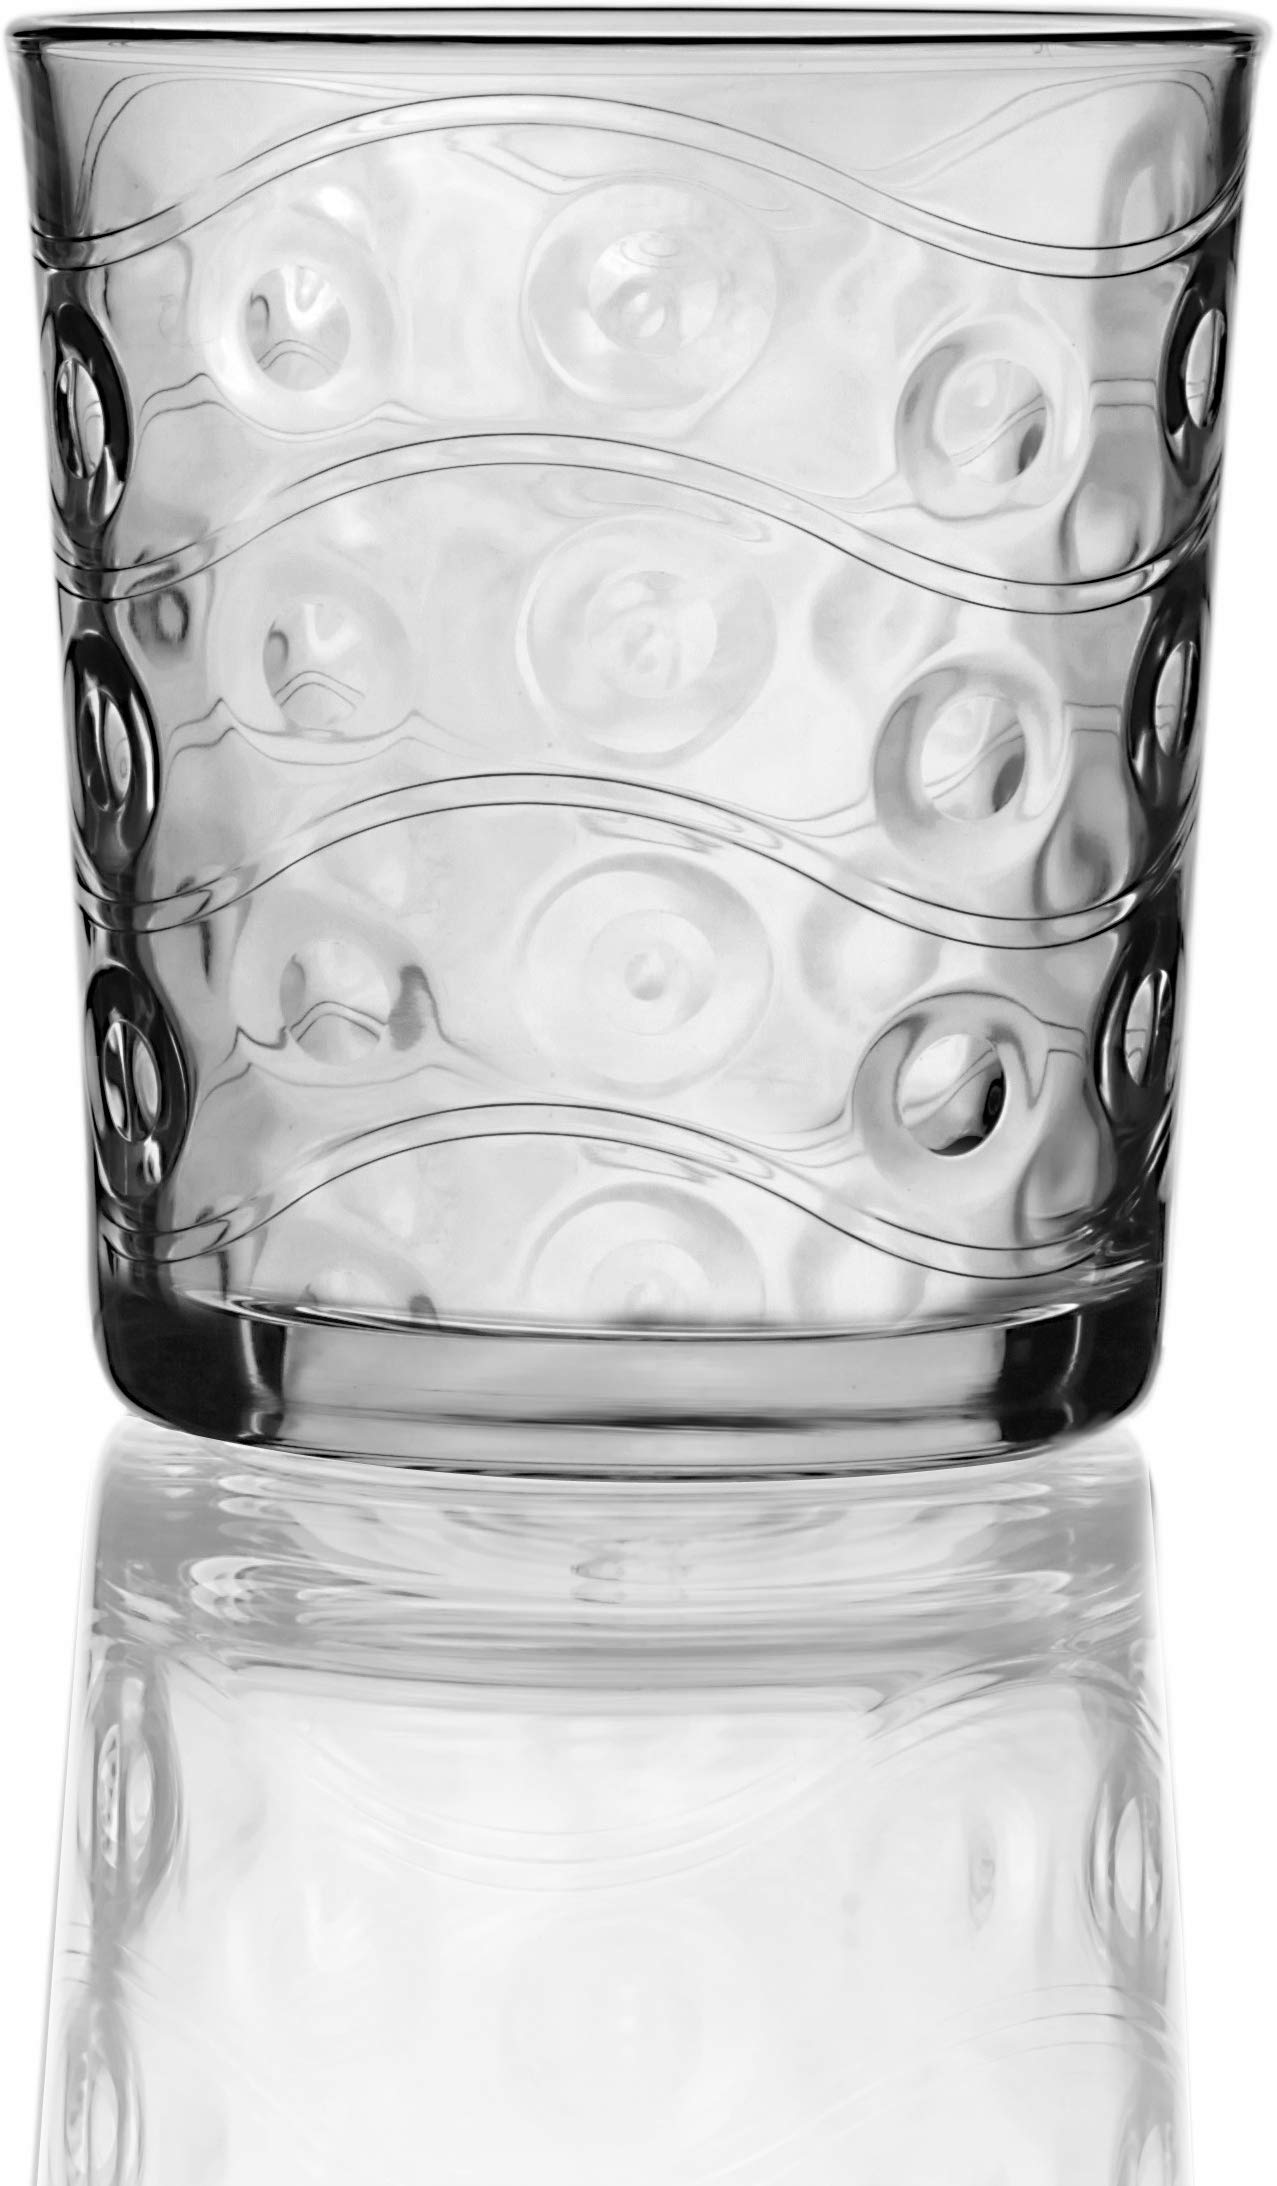 Circleware Heavy Base Whiskey Glasses 4-Piece Set, Party Entertainment Dining Beverage Drinking Glassware Cups for Water…